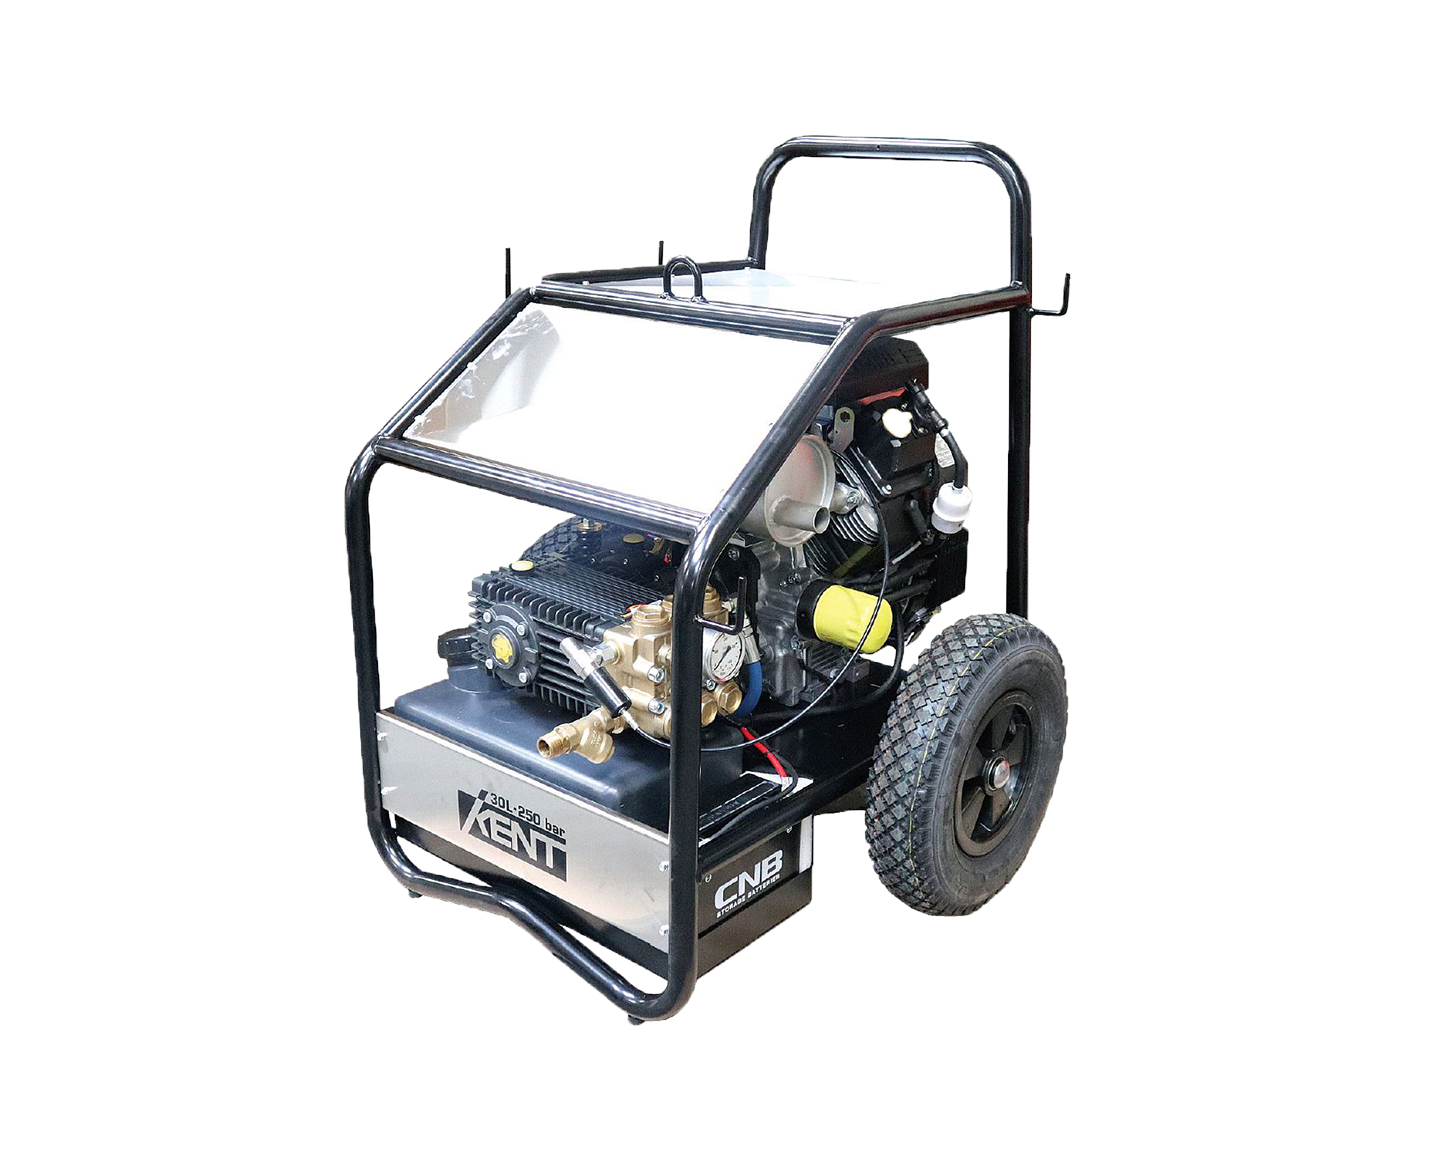 Petrol & Diesel cold-water high pressure cleaners | Kent A/S